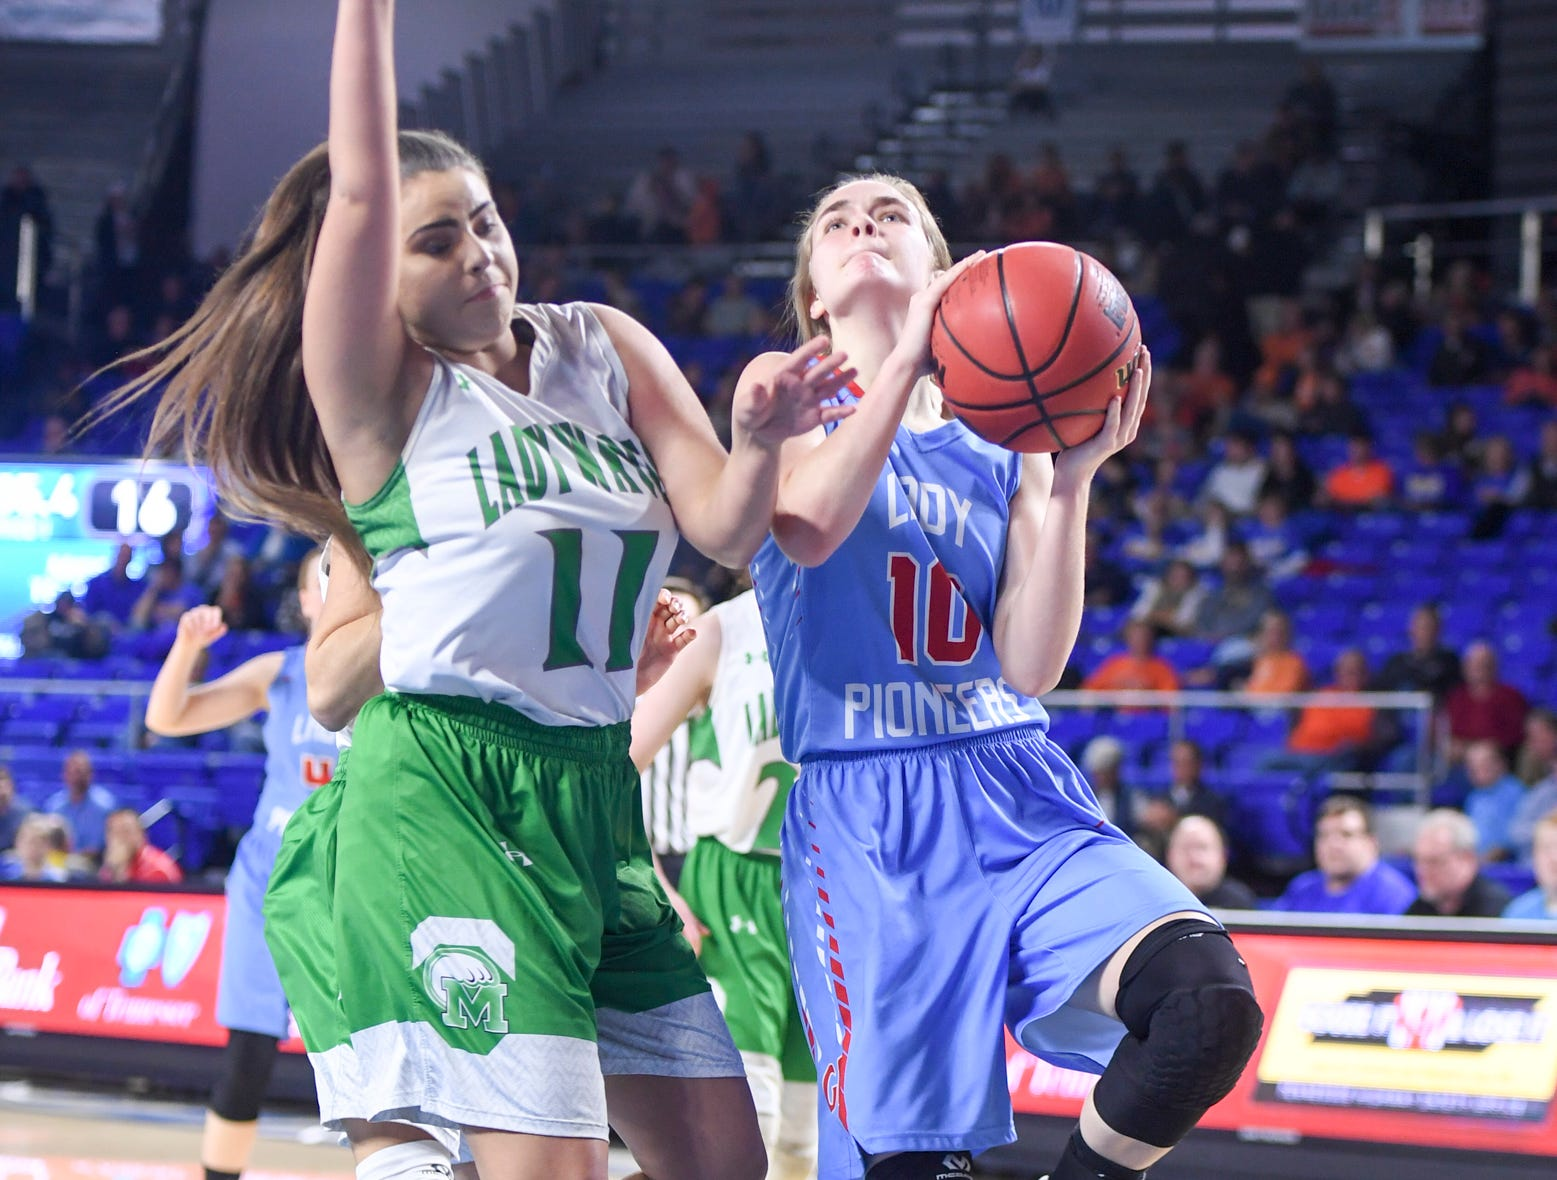 Gibson County's Kaci Sweatt (10) is guarded by Midway's Megan Norman (11) as Sweatt goes up for a shot during their Class A semifinal game, Friday, March 8, 2019, in  Murfreesboro.